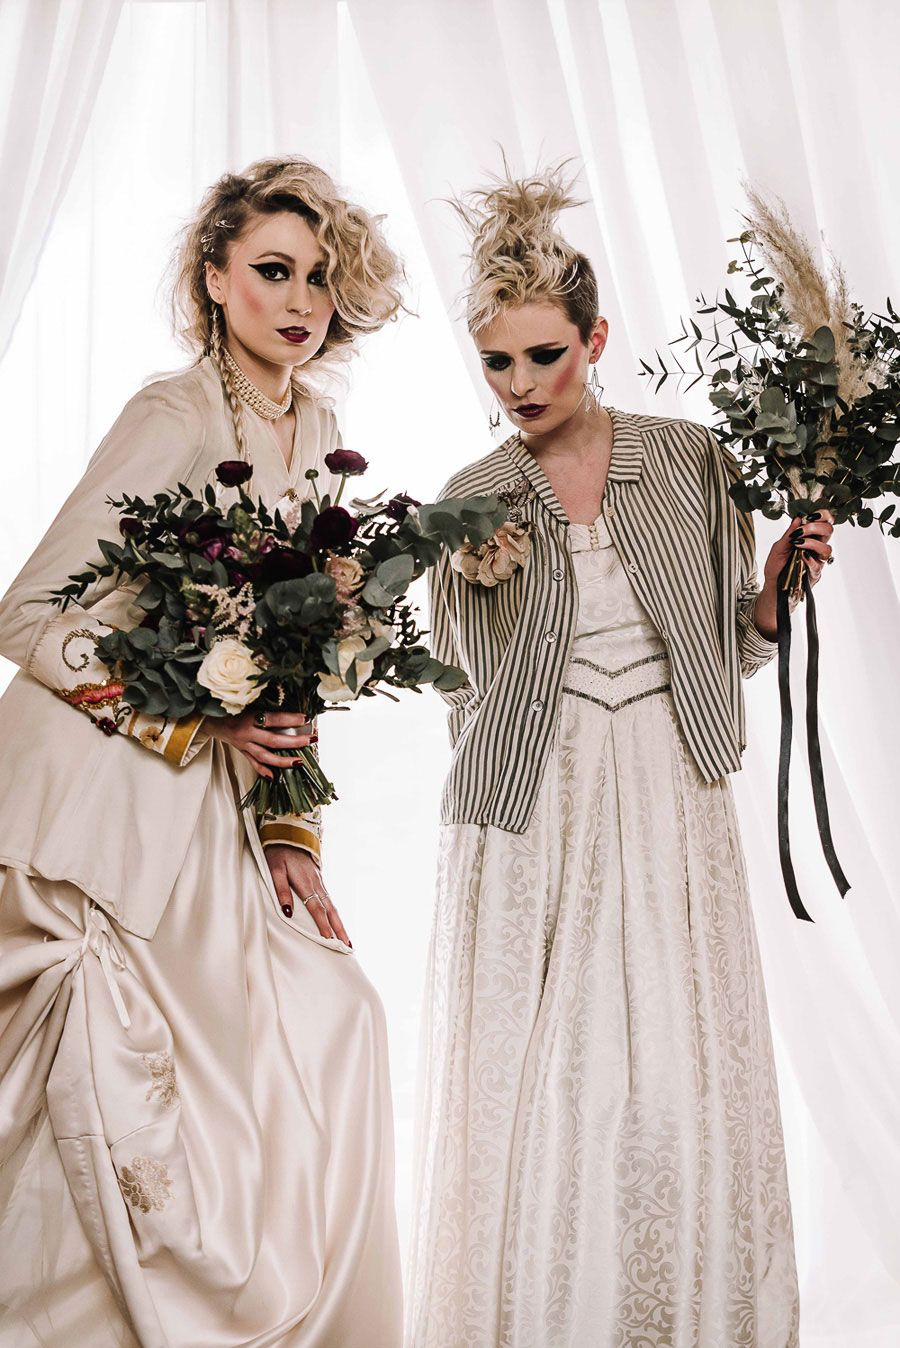 God Save The Queen: A Pretty & Punk Inspired Alternative Bridal Shoot!